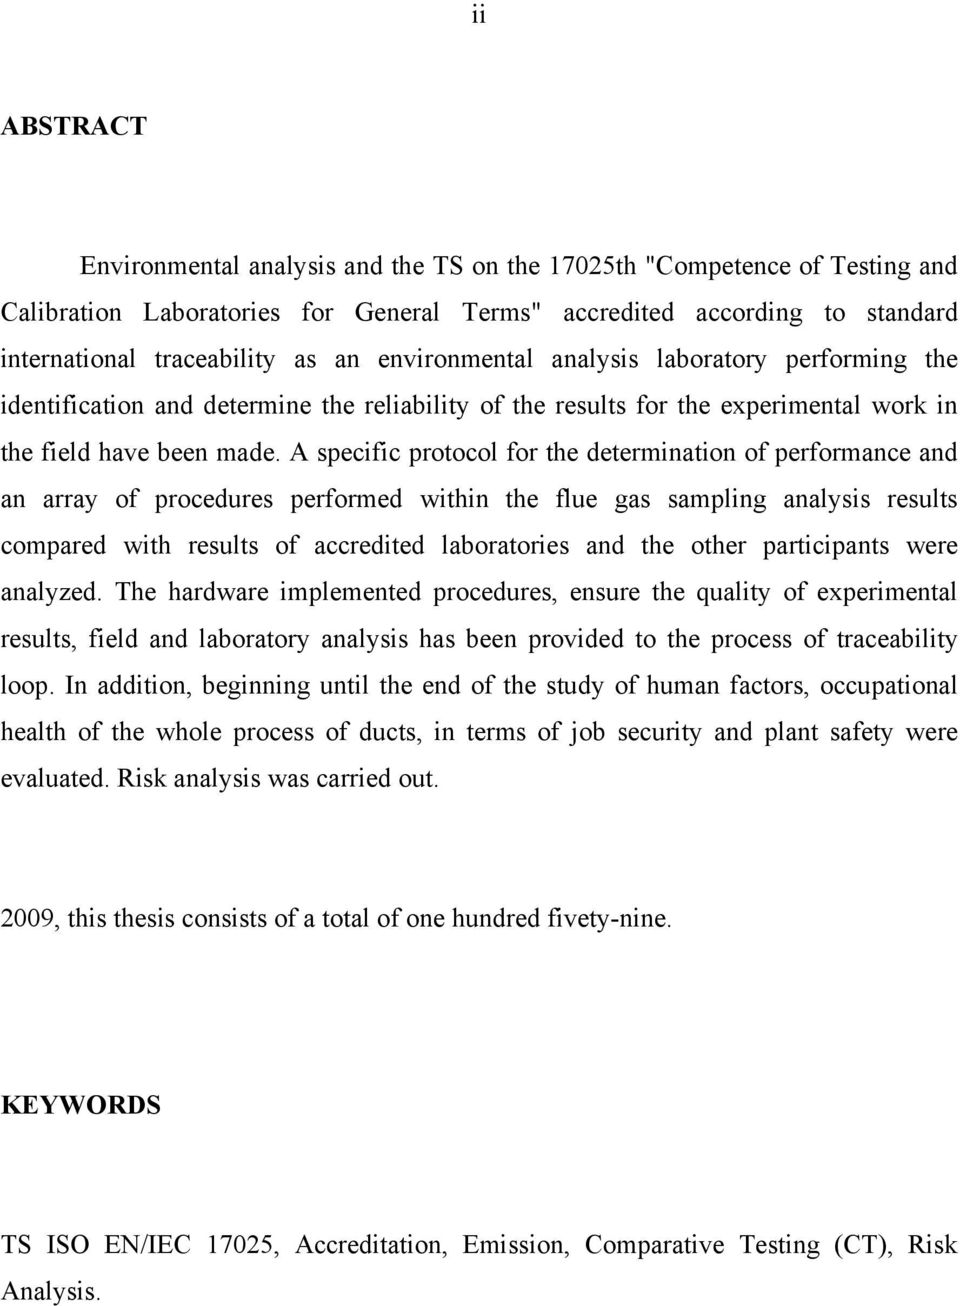 A specific protocol for the determination of performance and an array of procedures performed within the flue gas sampling analysis results compared with results of accredited laboratories and the